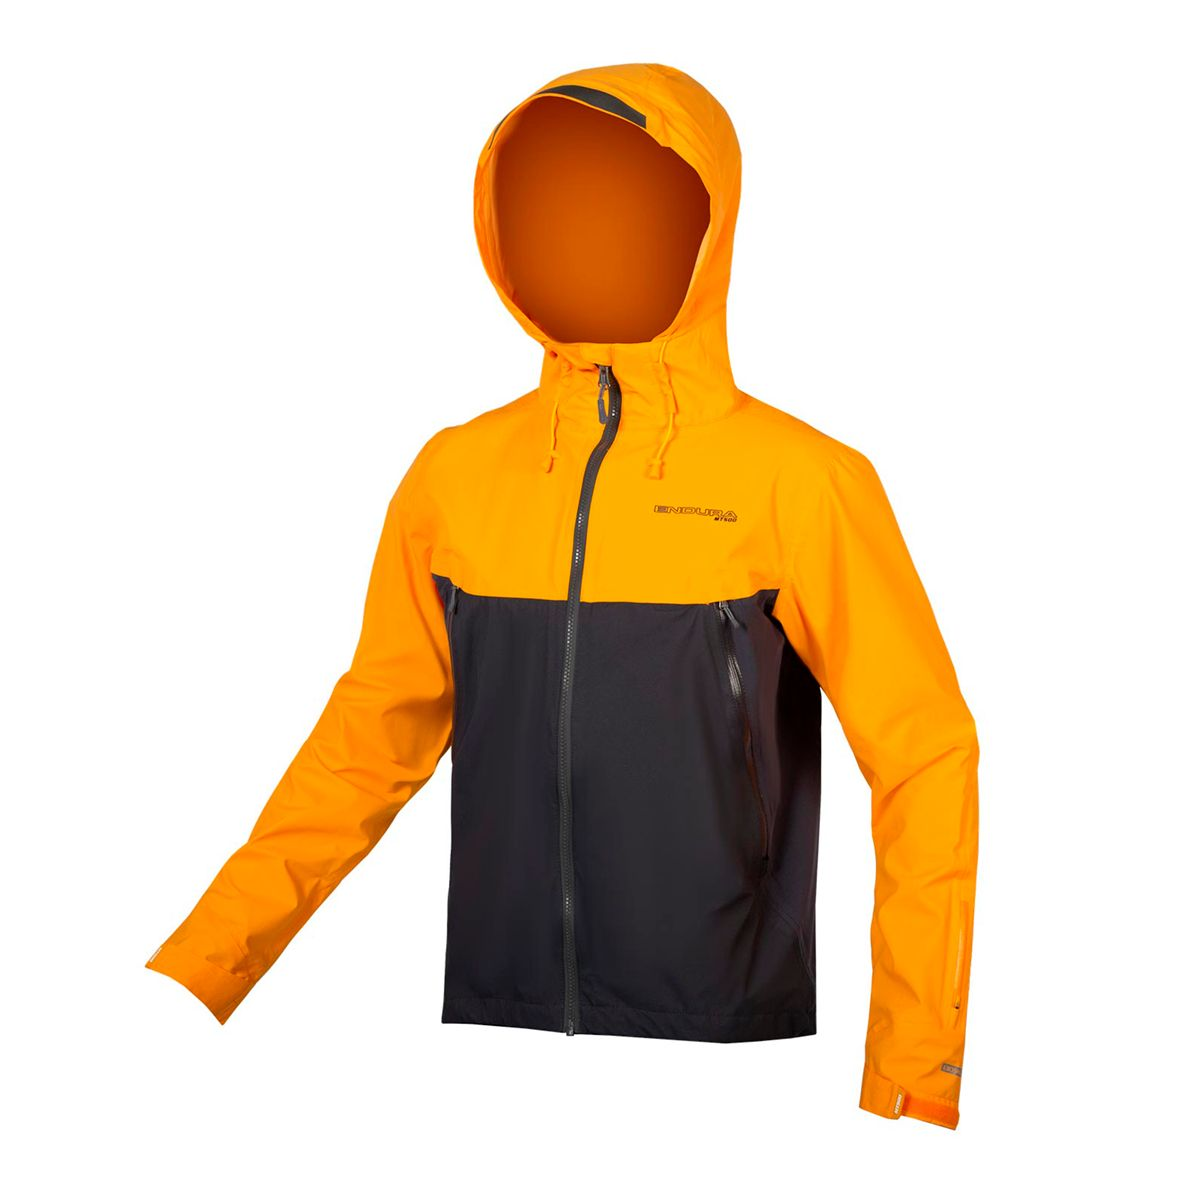 MT500 waterproof jacket for men